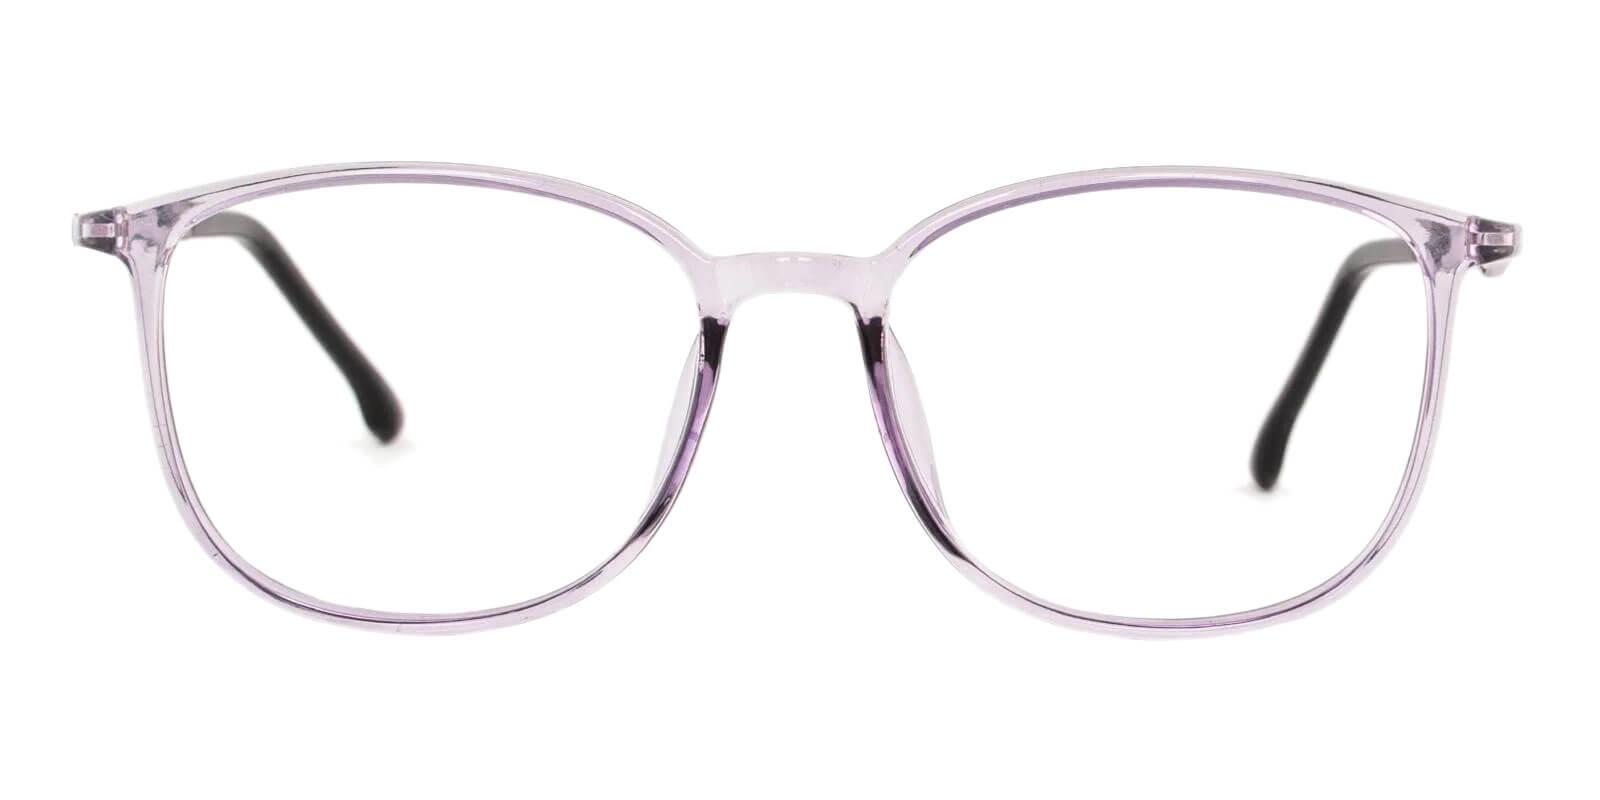 Leah Purple TR Lightweight , UniversalBridgeFit , Eyeglasses Frames from ABBE Glasses